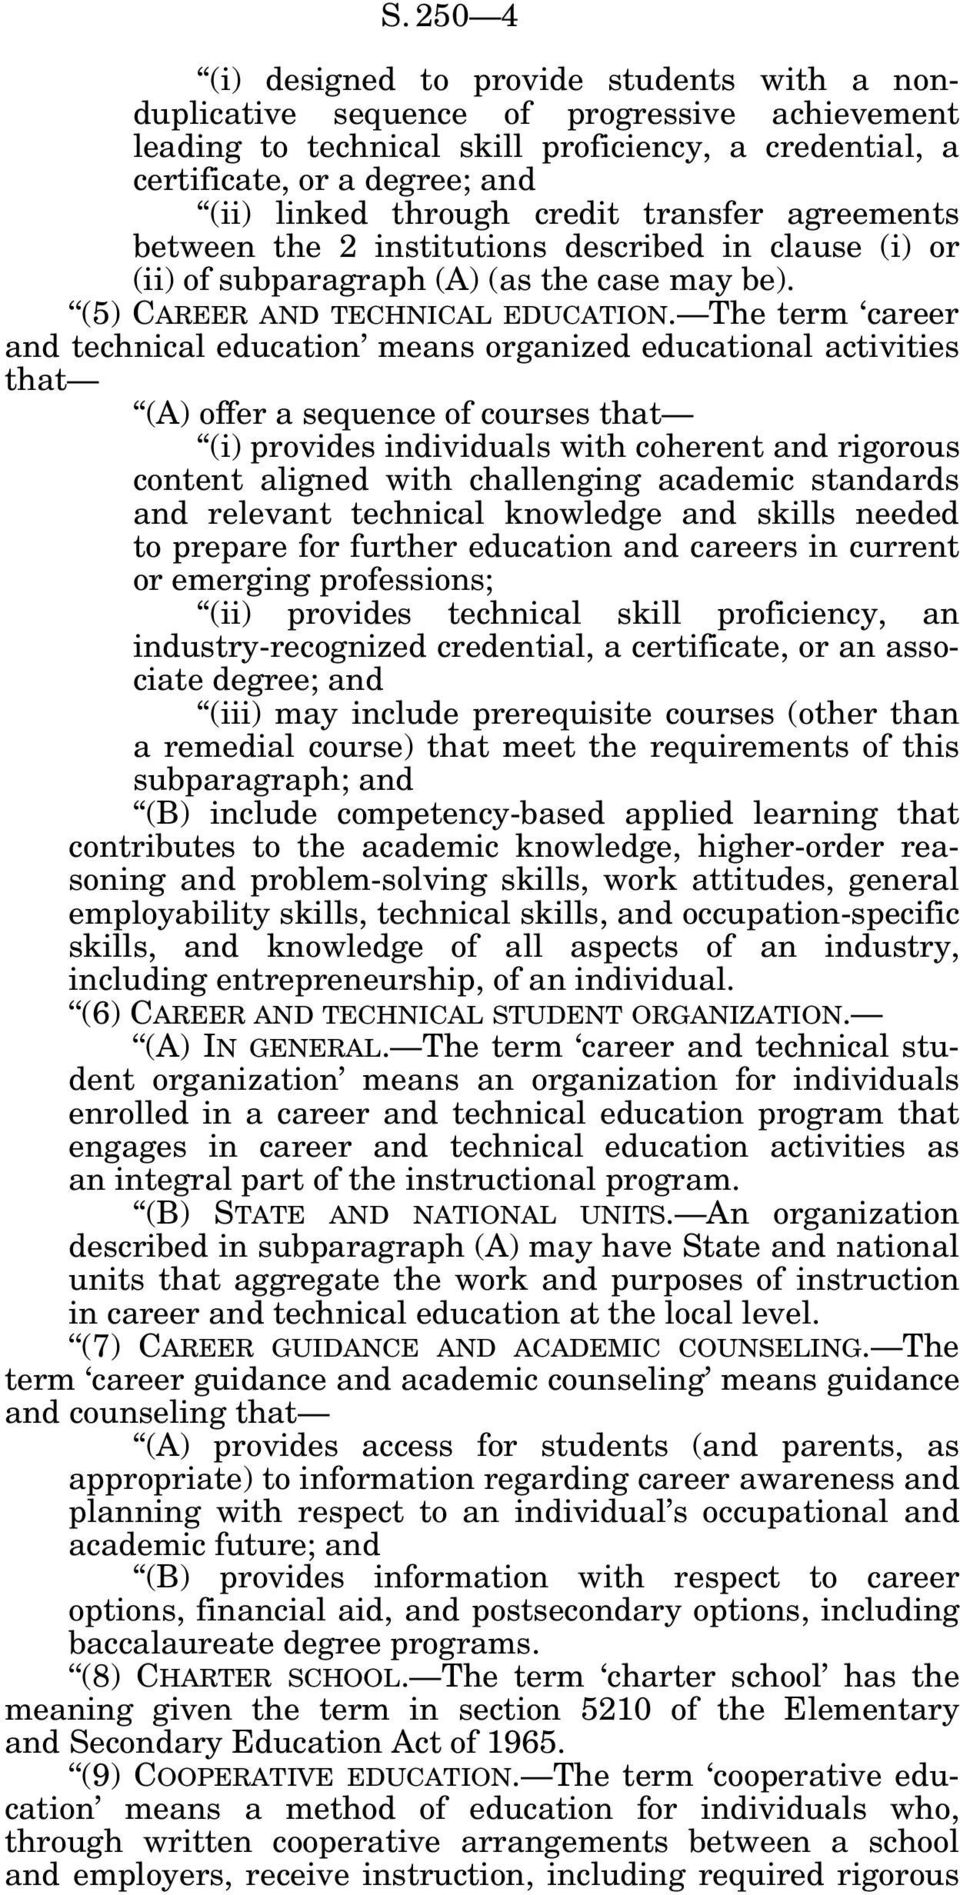 The term career and technical education means organized educational activities that (A) offer a sequence of courses that (i) provides individuals with coherent and rigorous content aligned with